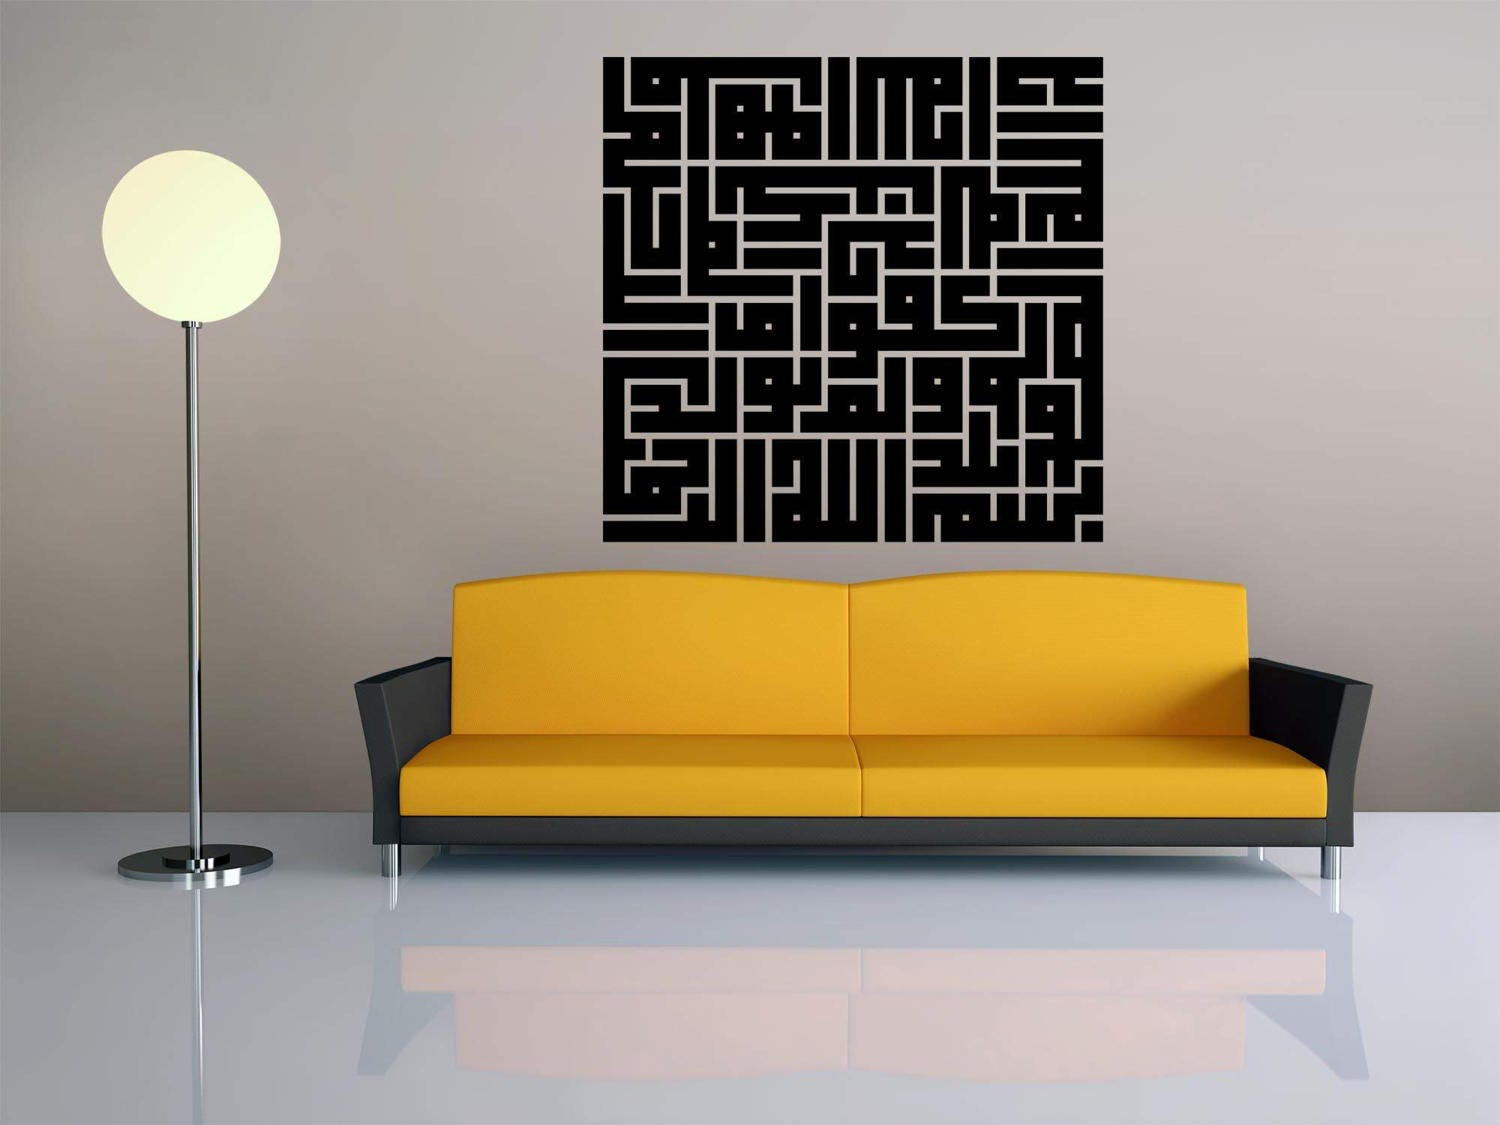 Wall Decal Arabic Wall Decal Wall Art Decal Home Decor Home | Etsy